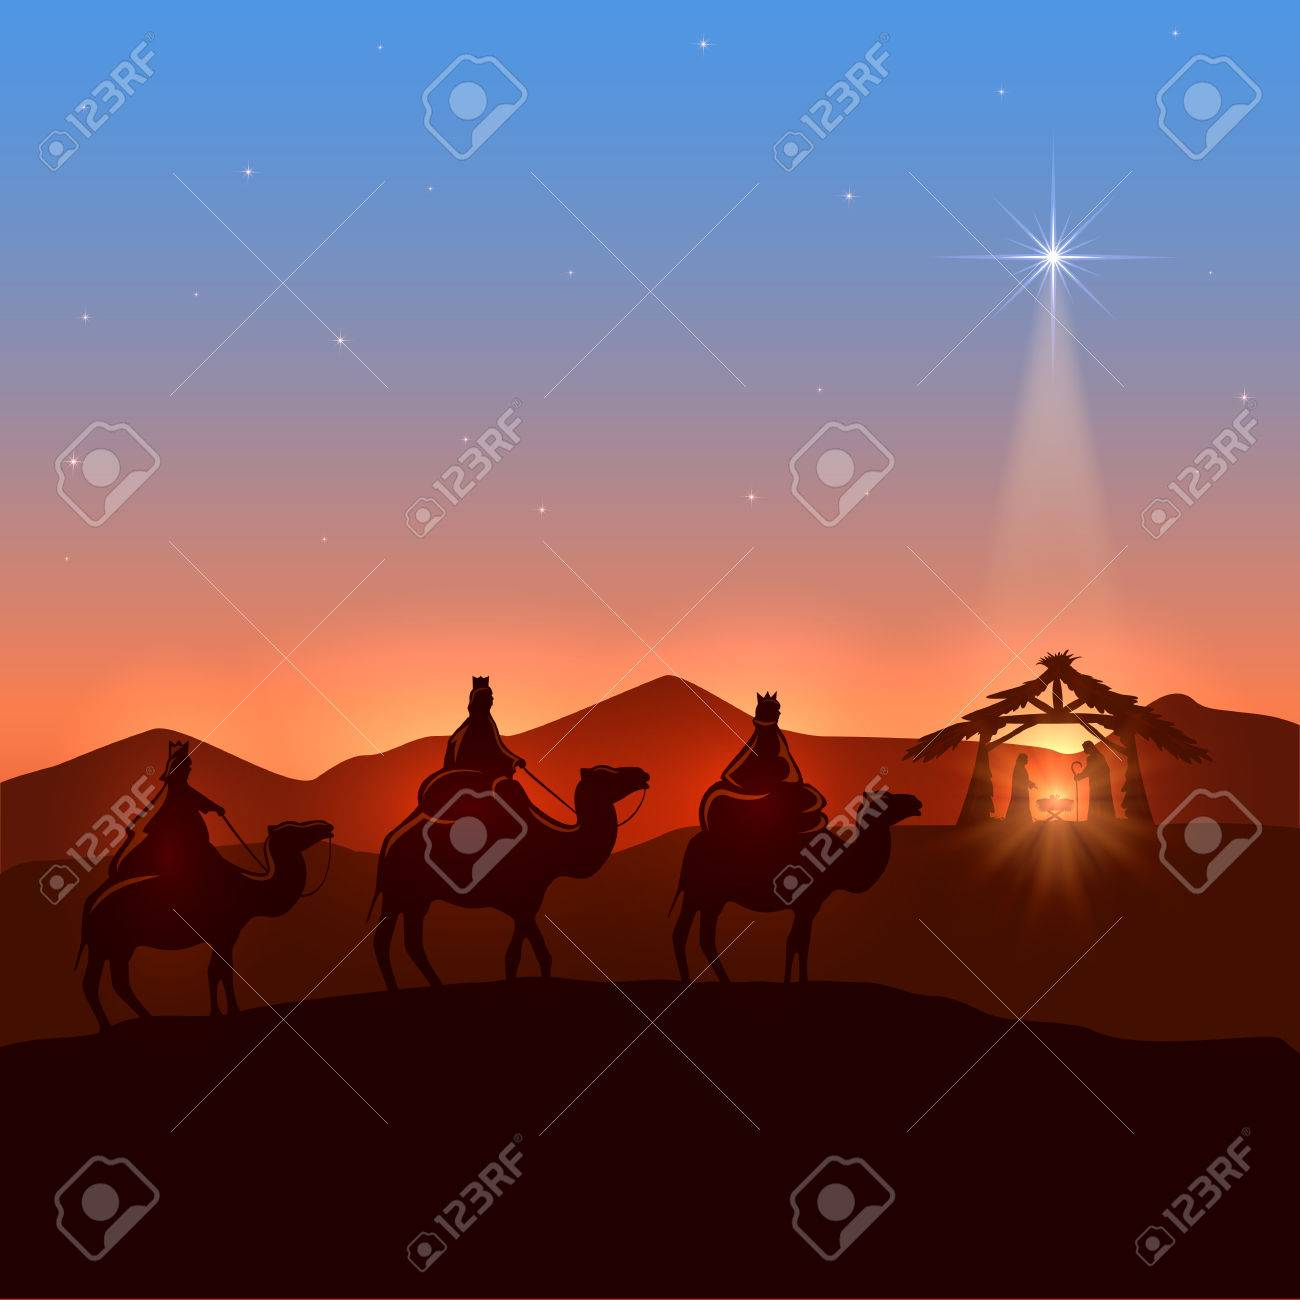 Christmas background with three wise men and shining star, Christian theme, illustration. - 47879116